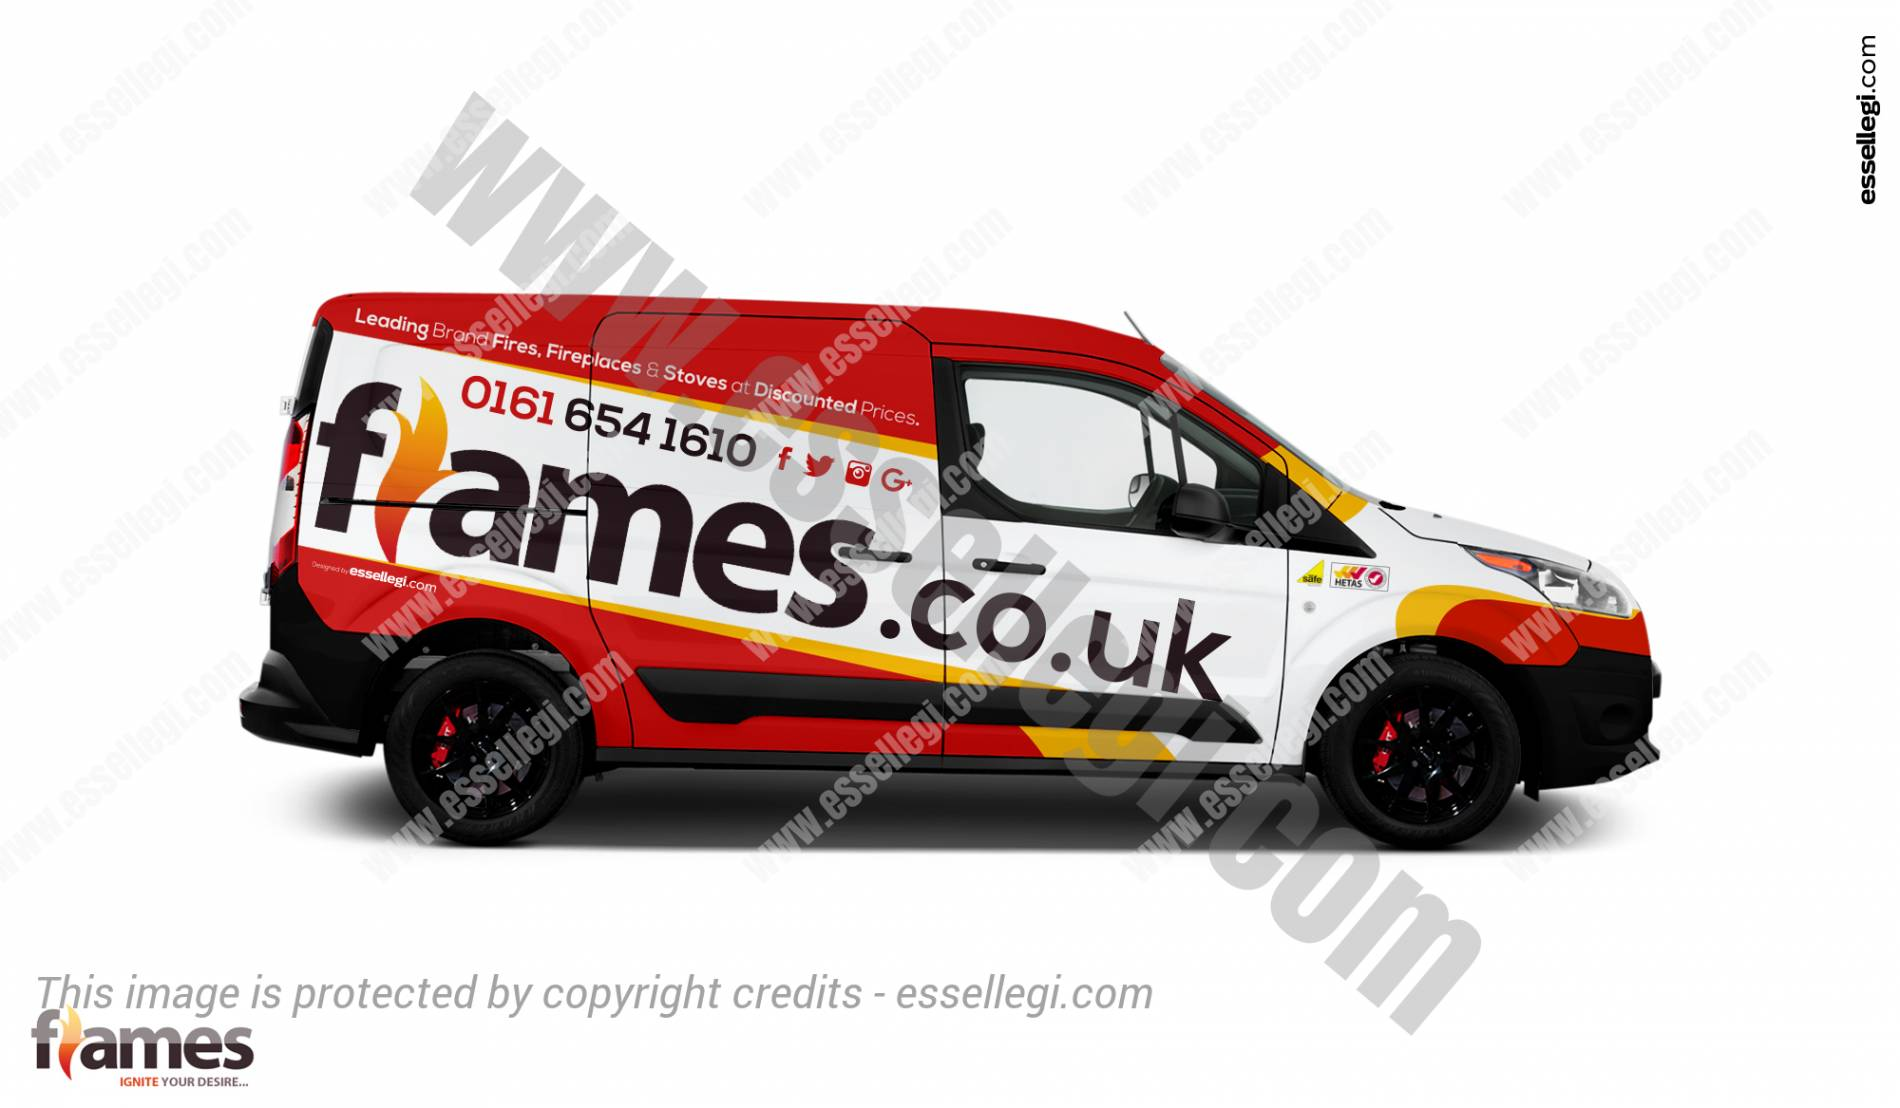 Ford Transit Connect | Van Wrap Design by Essellegi. Van Signs, Van Signage, Van Wrapping, Van Signwriting, Van Wrap Designer, Signs for Van, Van Logo by Essellegi.